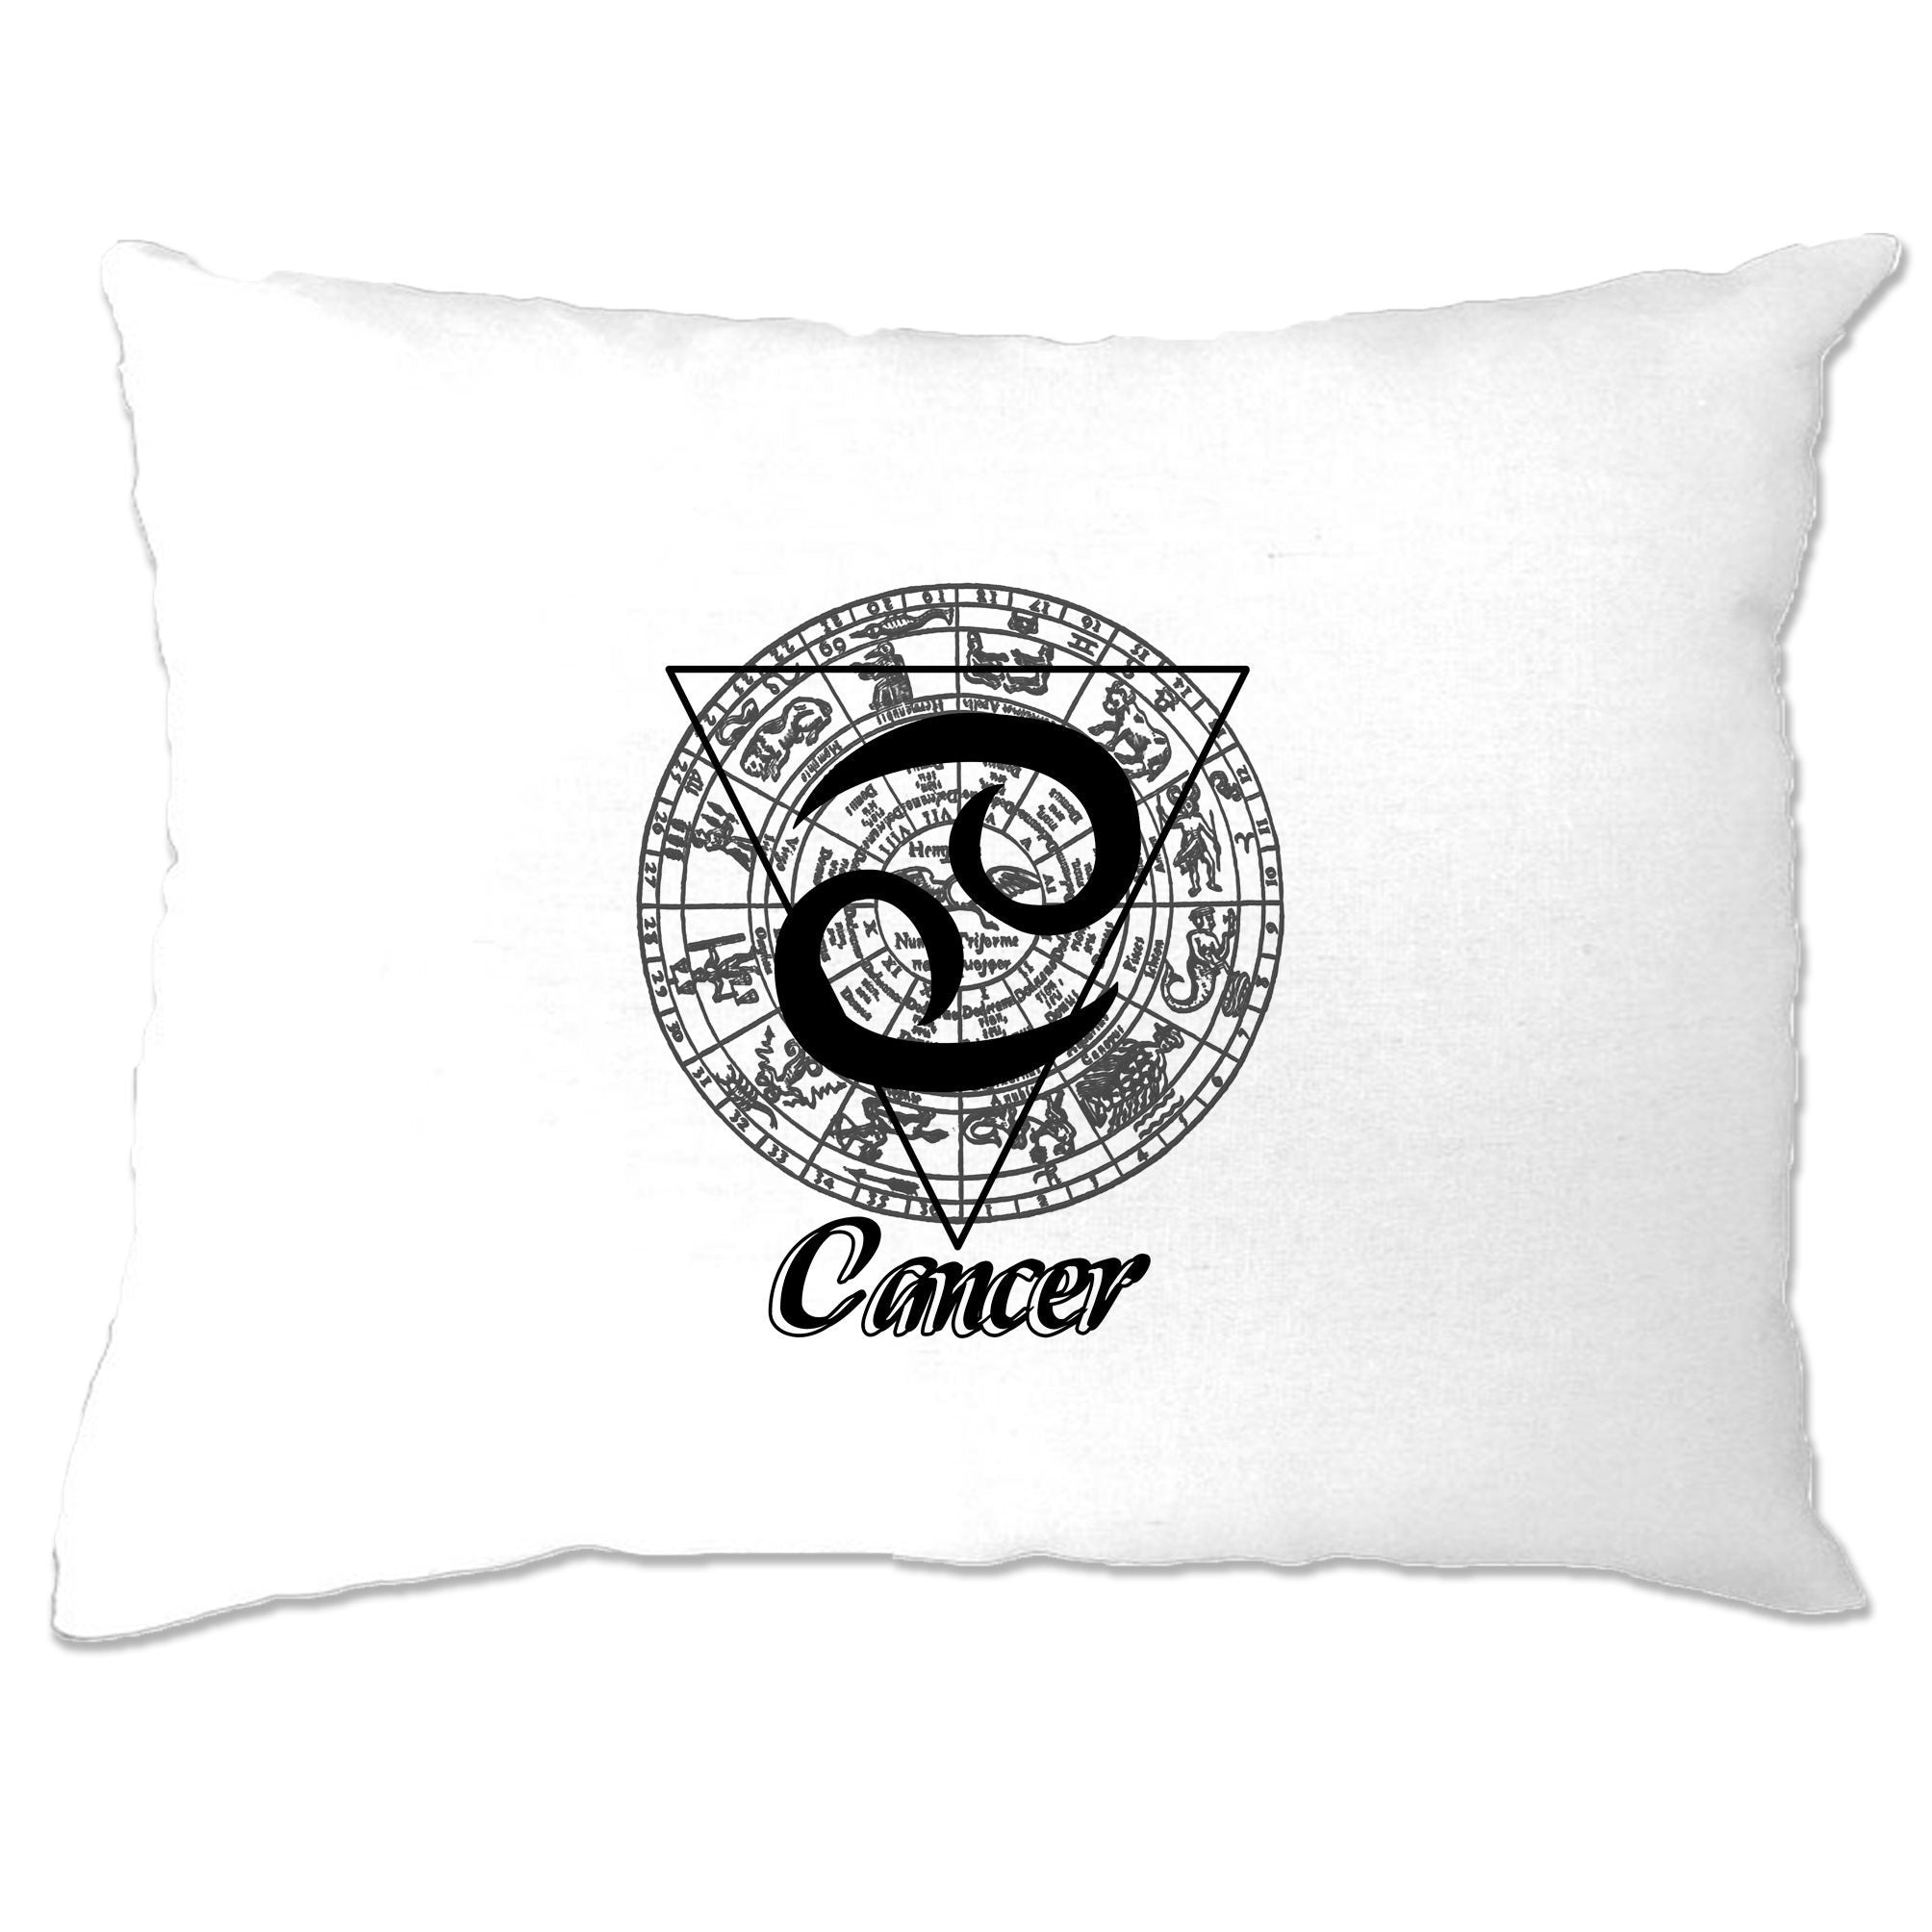 Horoscope Pillow Case Cancer Zodiac Star Sign Birthday